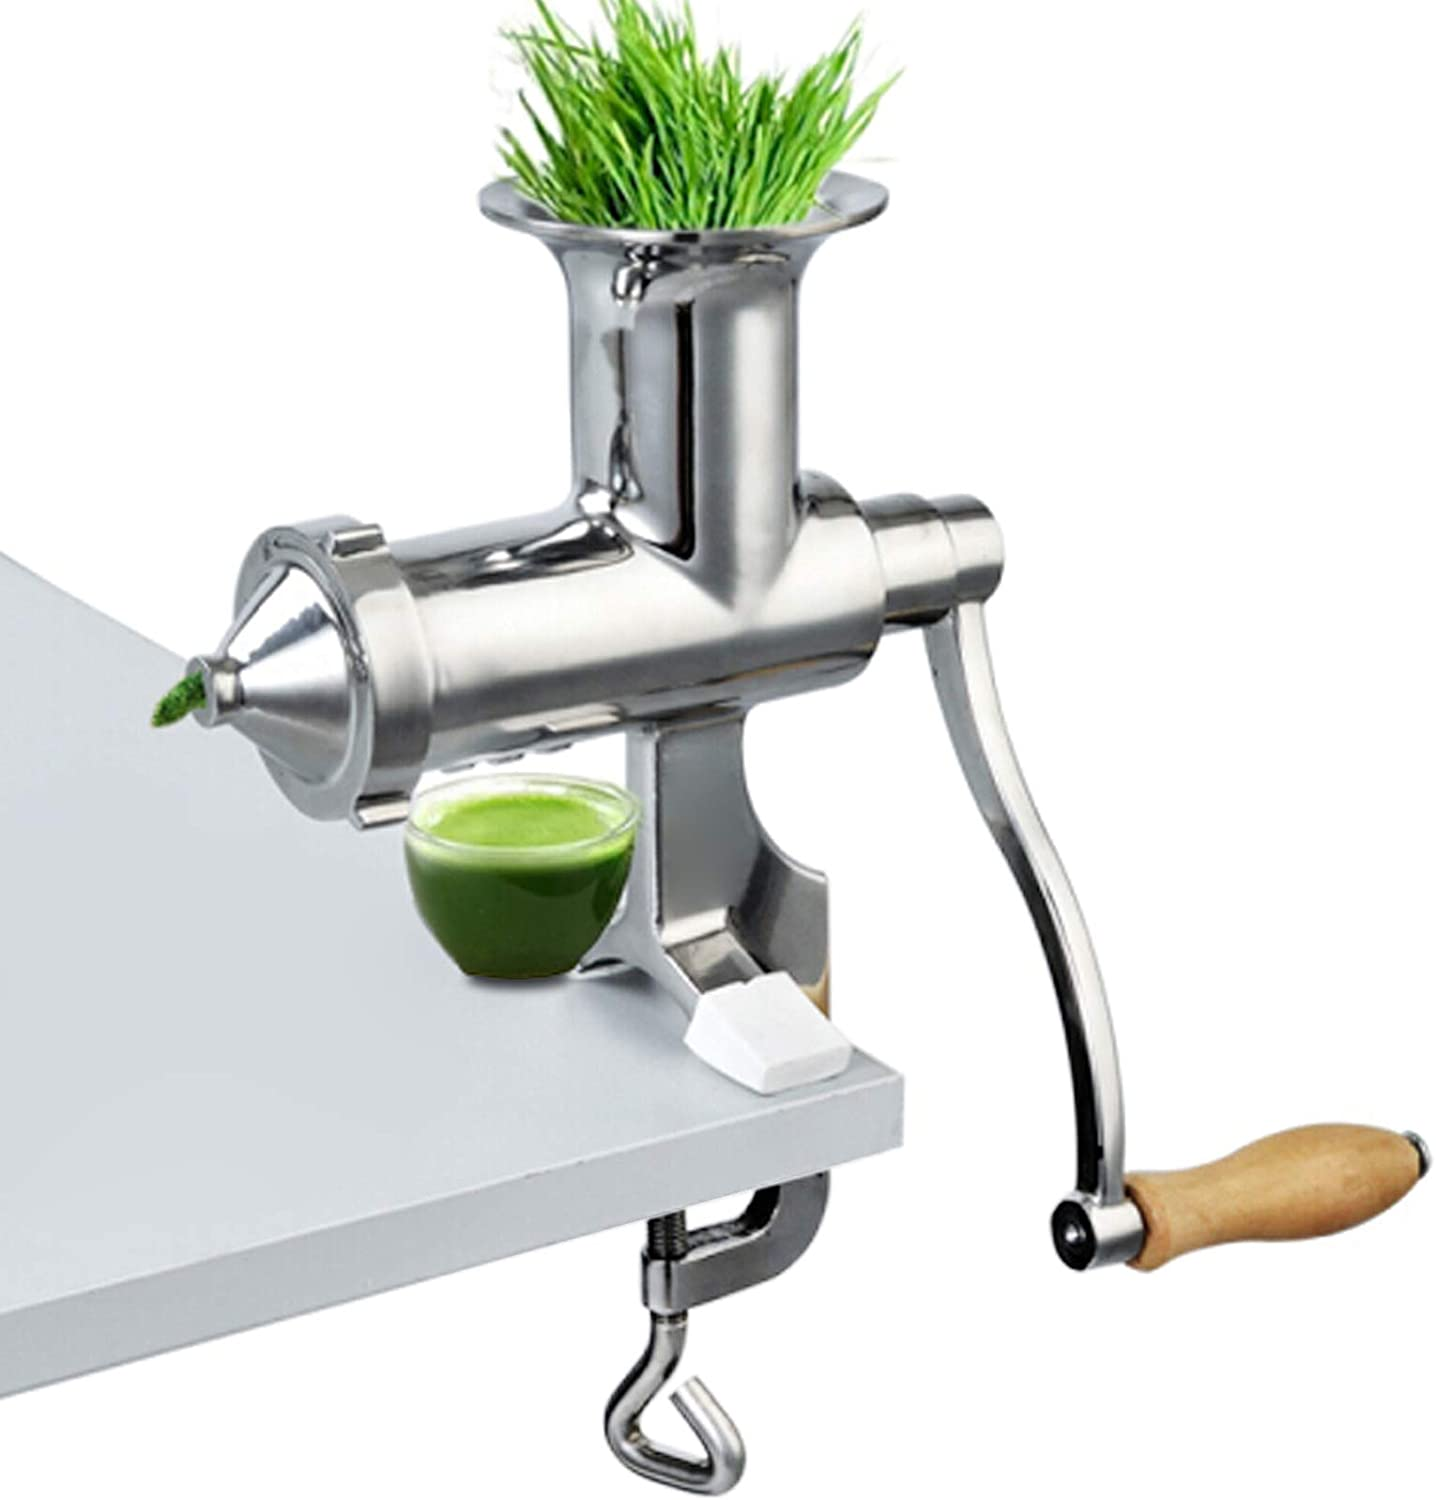 61NdKrpOvEL. AC SL1500 Best Hand Press Juicer 2021 Review